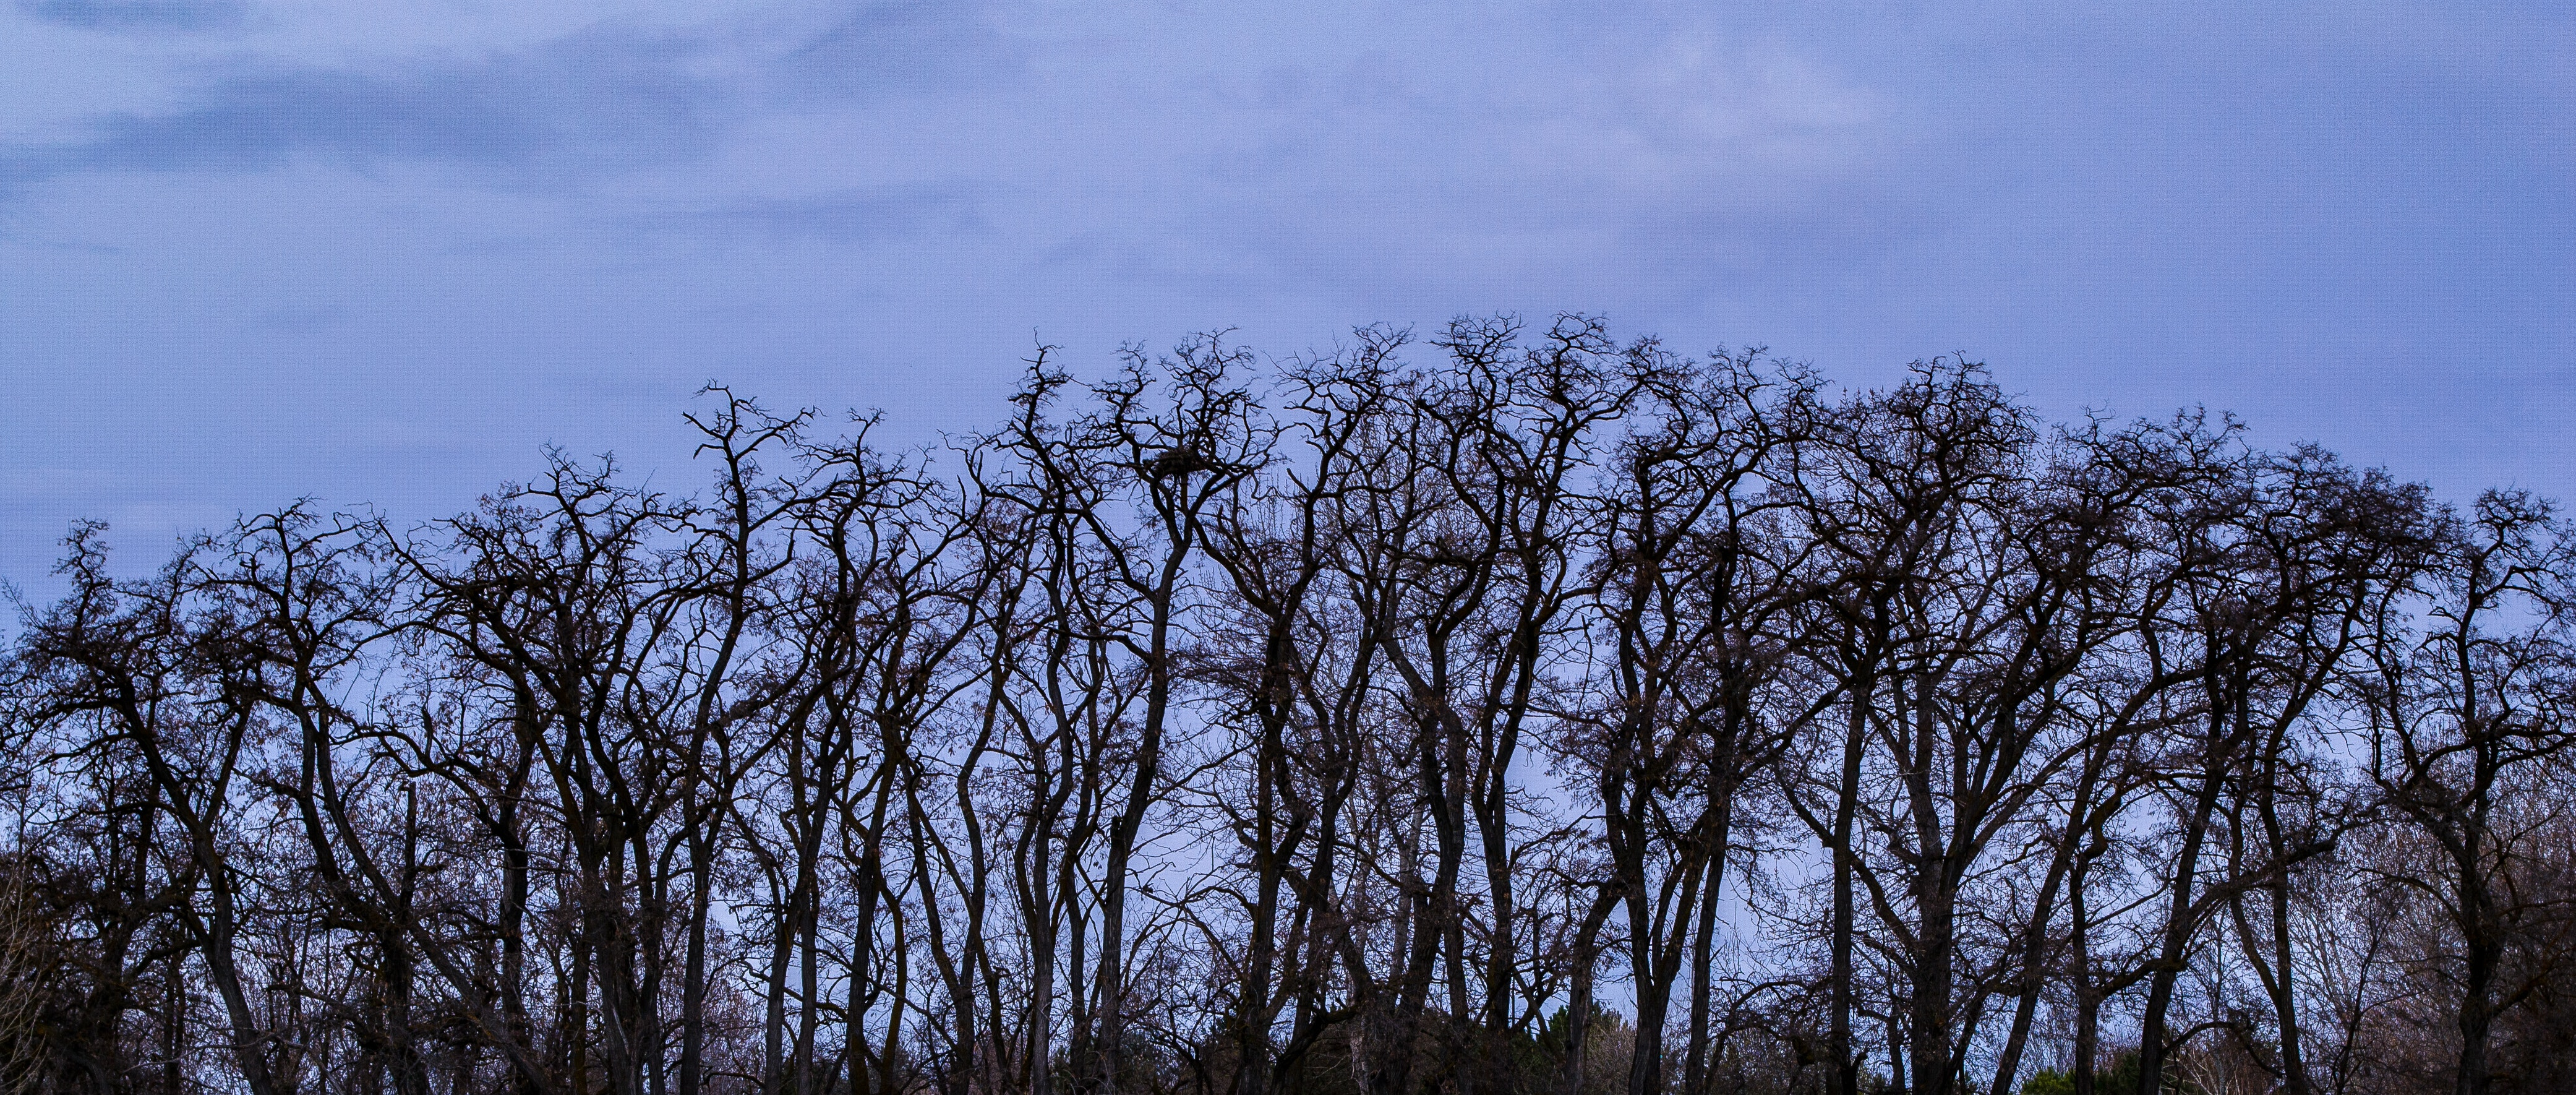 Trees without foliage during the cold season photo